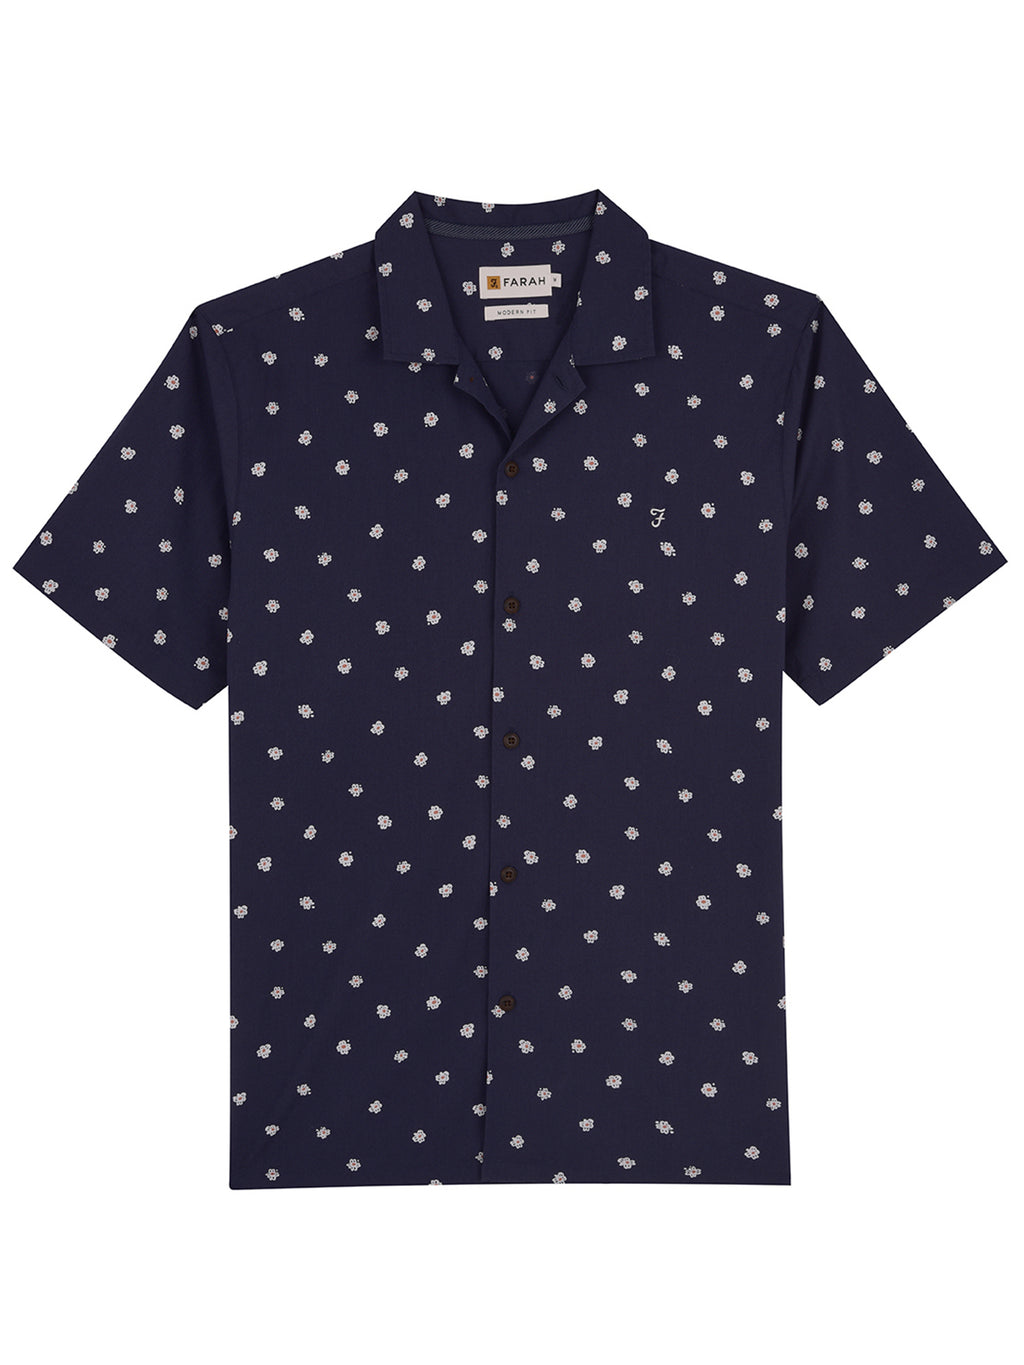 farah shirt navy